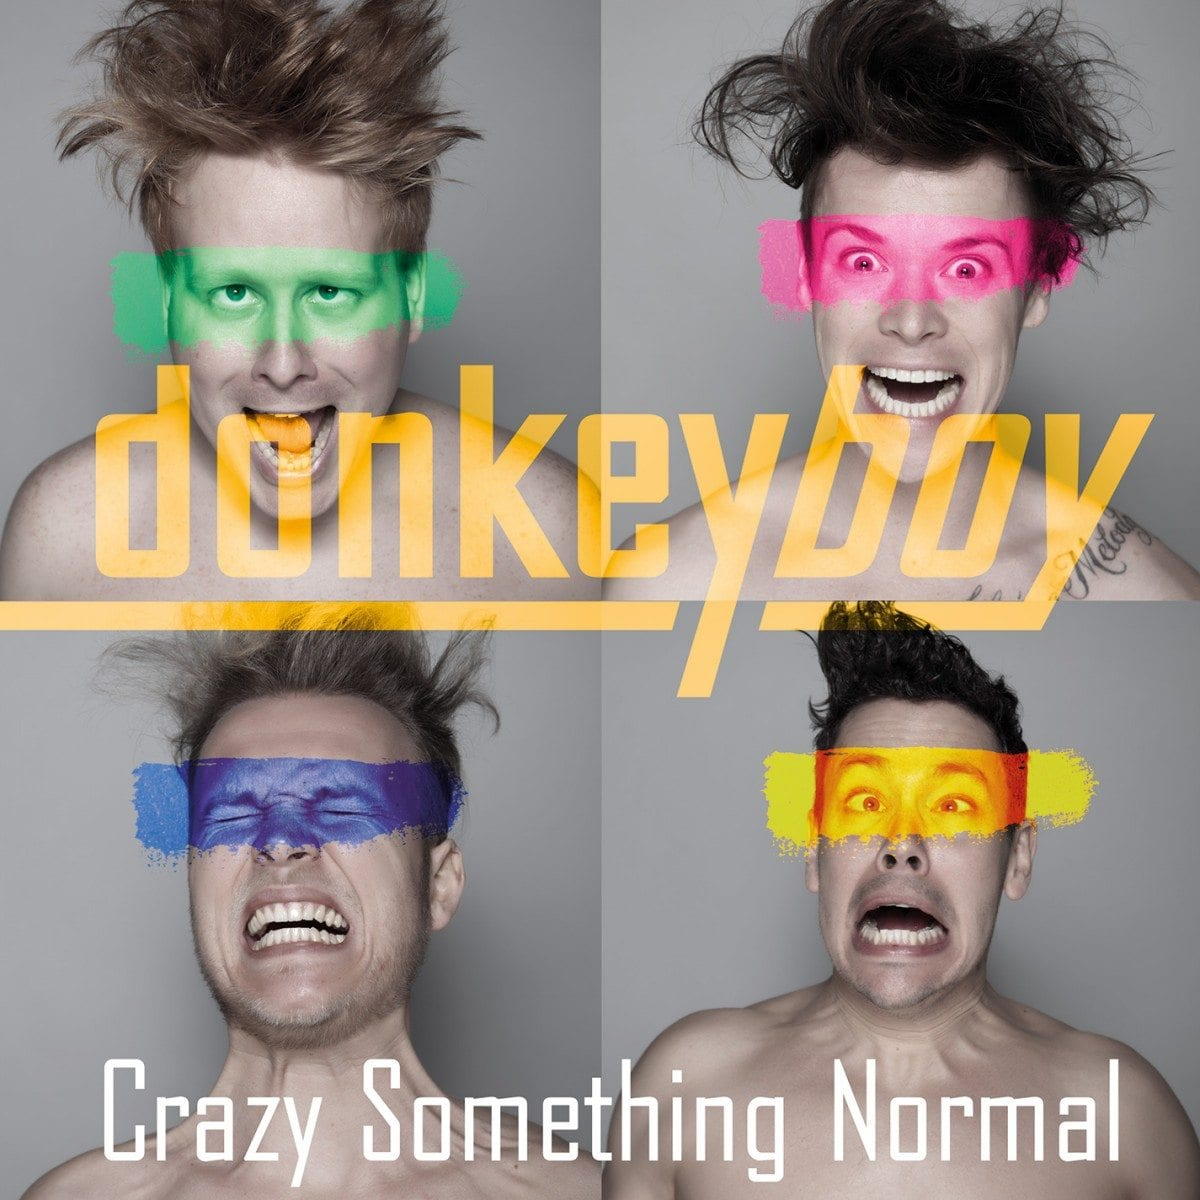 Donkeyboy_Crazy-Something-Normal-utvalgt[2]